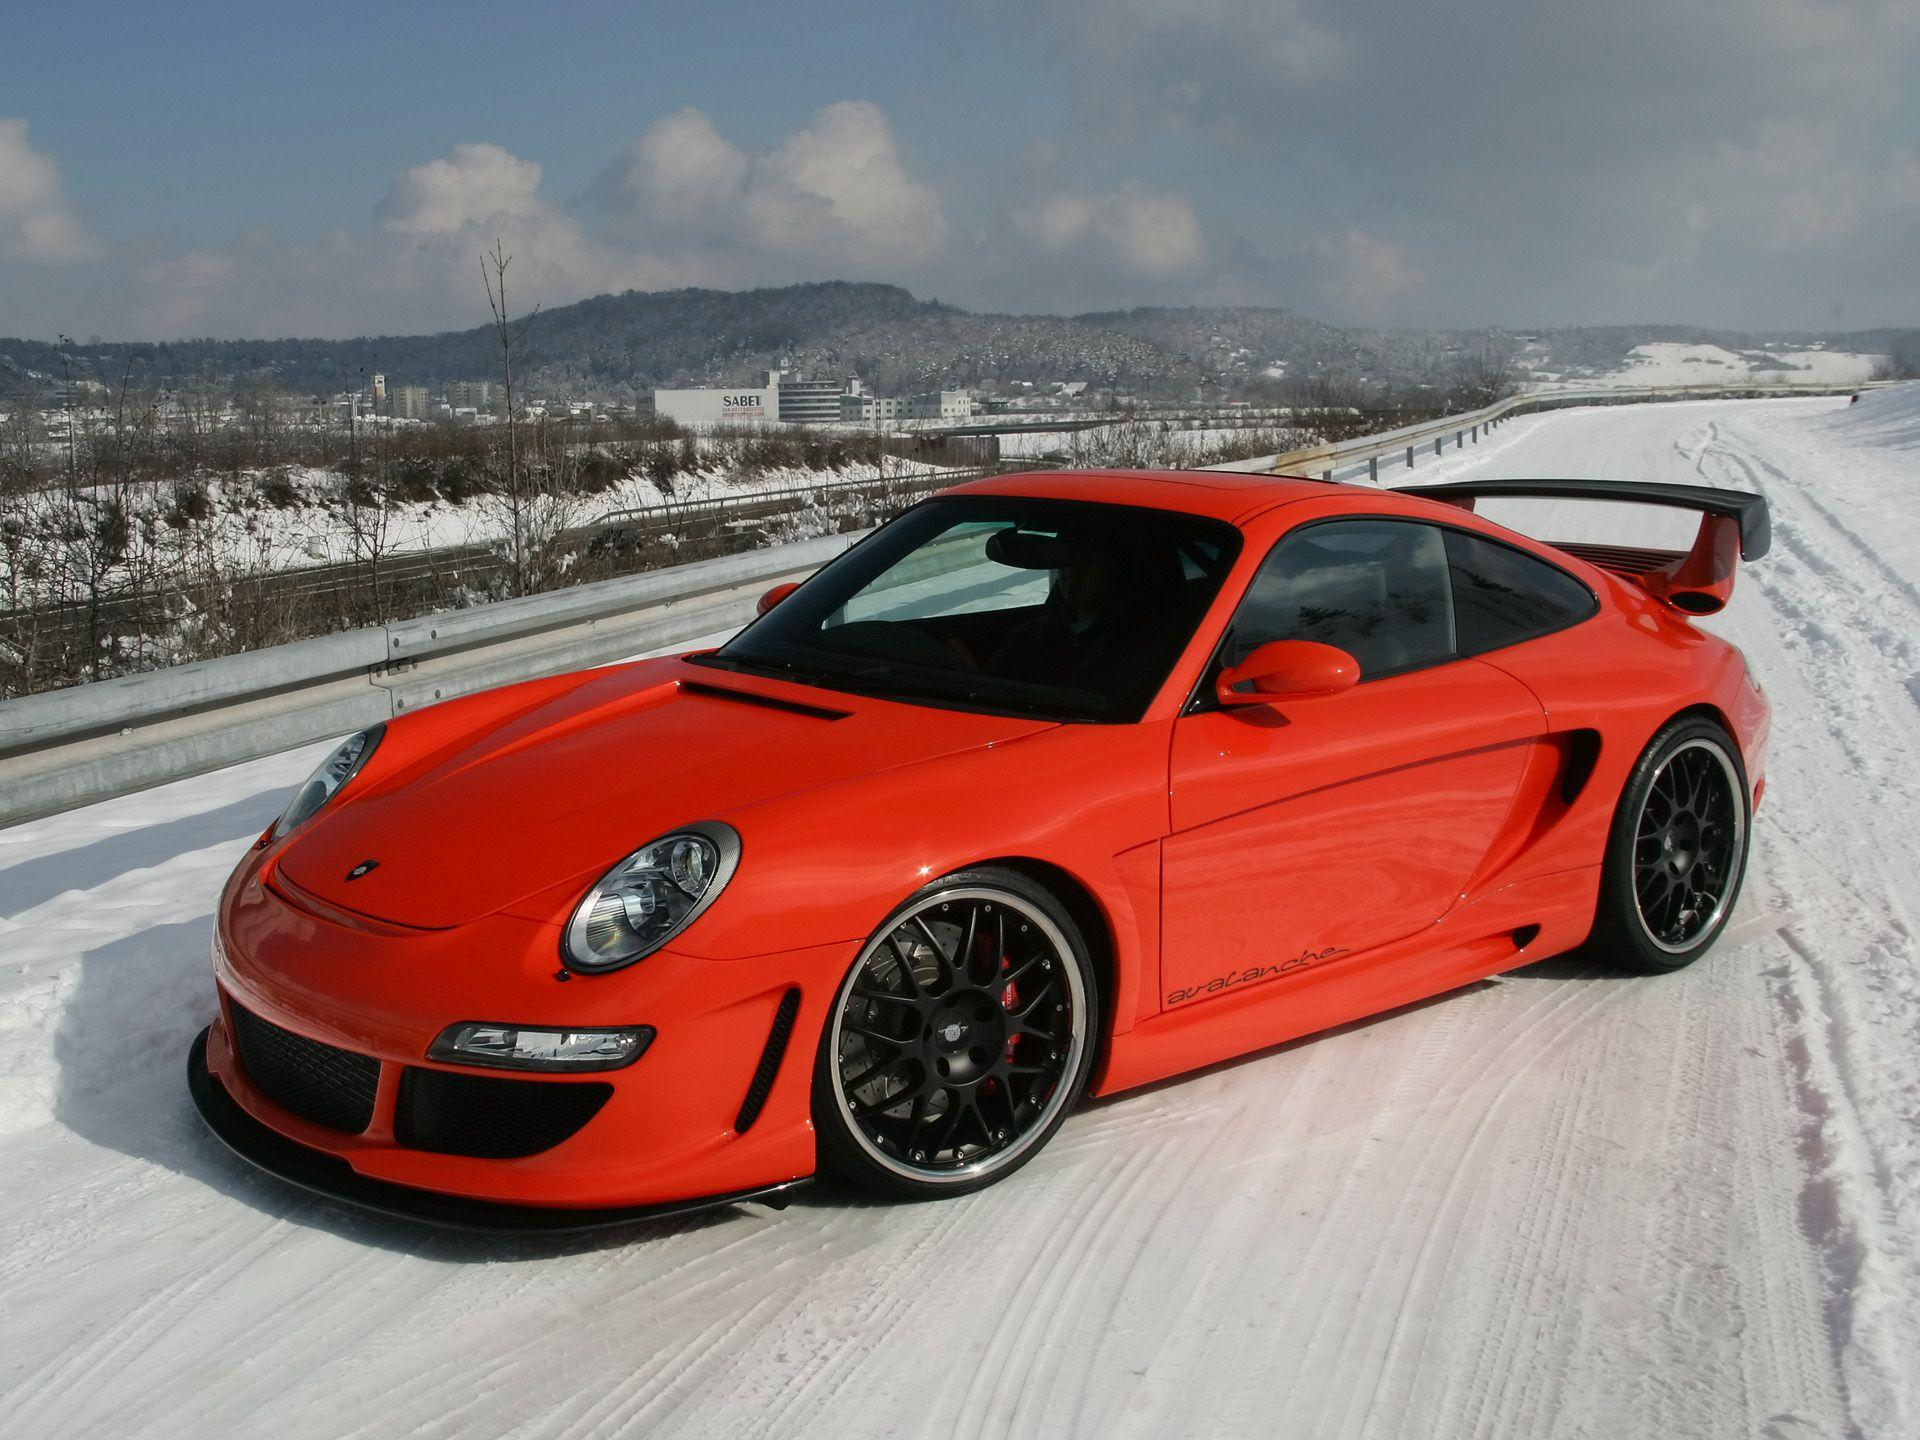 evo orange porsche wallpaper – 1920×1440 High Definition Wallpaper ...